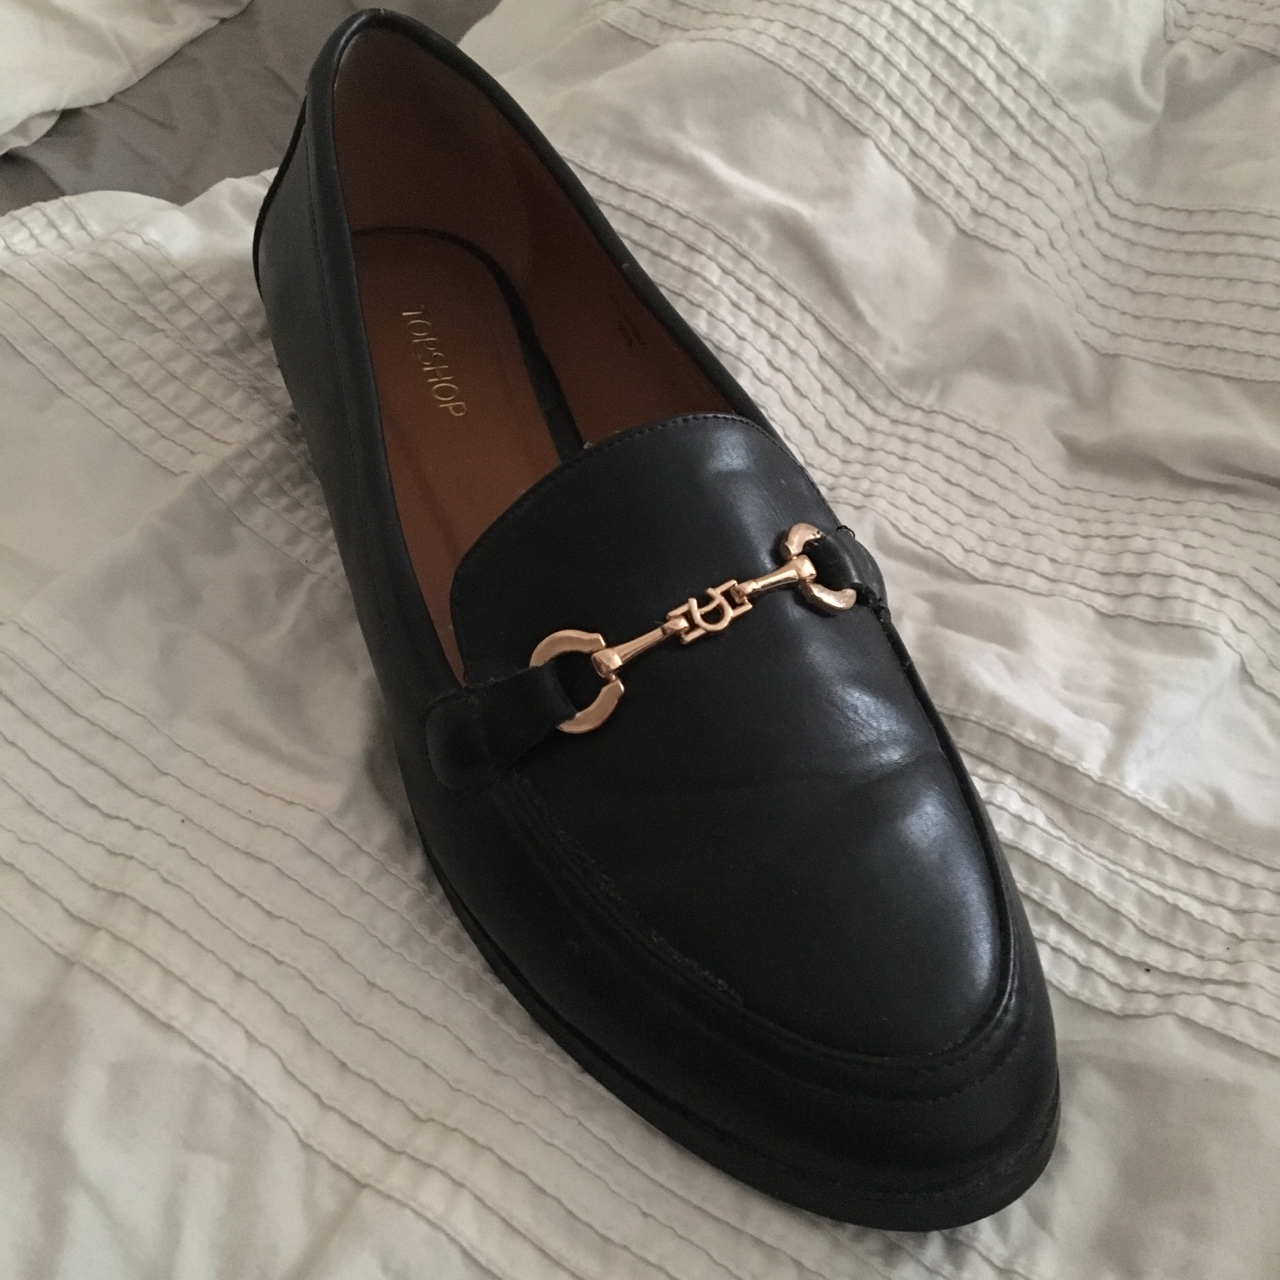 TOPSHOP black loafers with gold bar